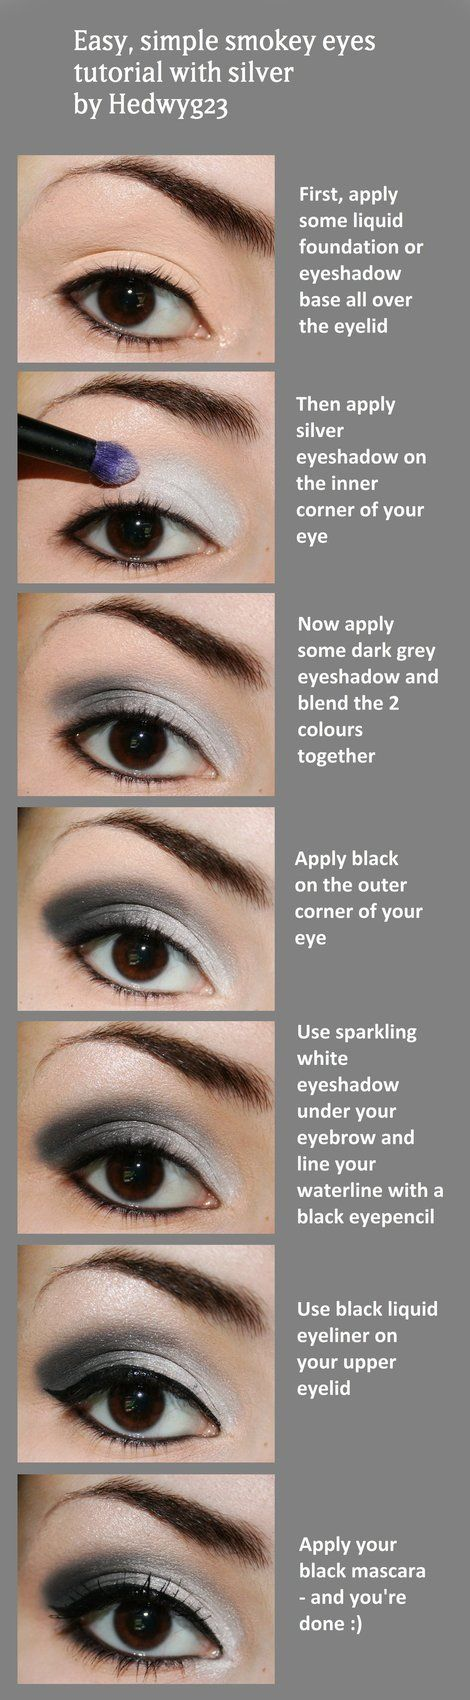 Easy & Simple silver smokey eye makeup tutorial #eyes #makeup #steps